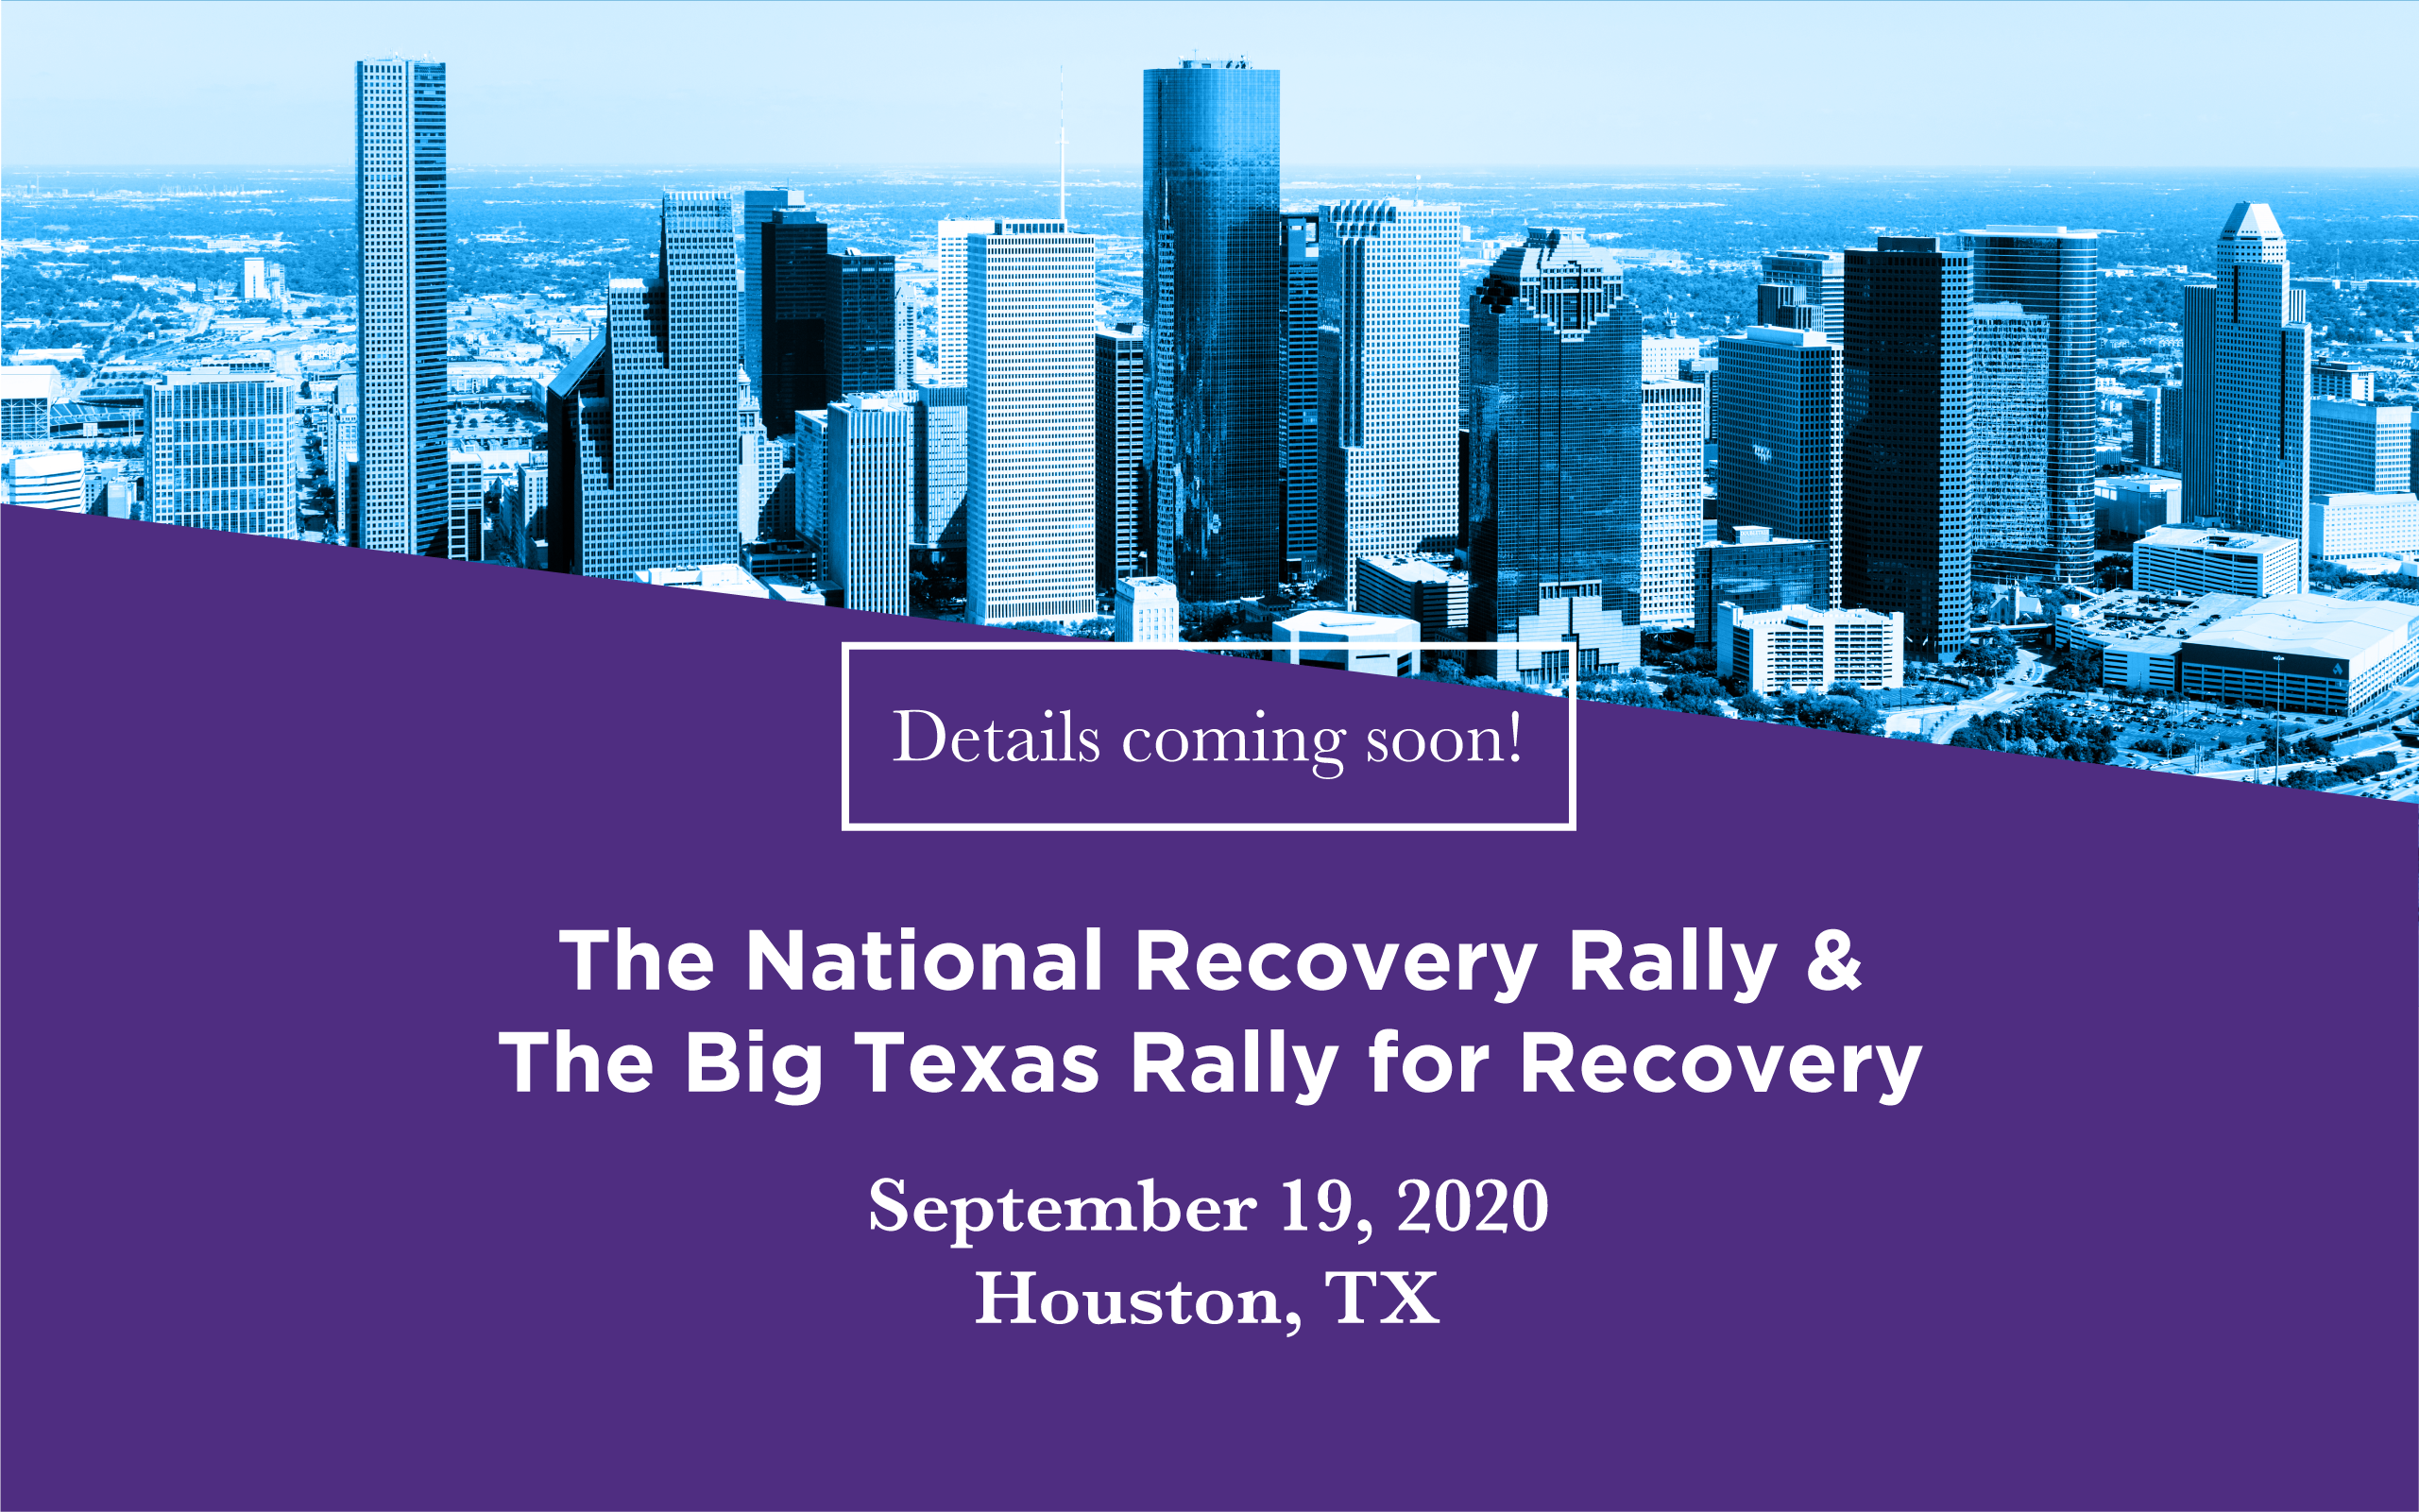 The National Recovery Rally and The Big Texas Rally for Recovery will take place on September 19, 2020 in Houston, TX!